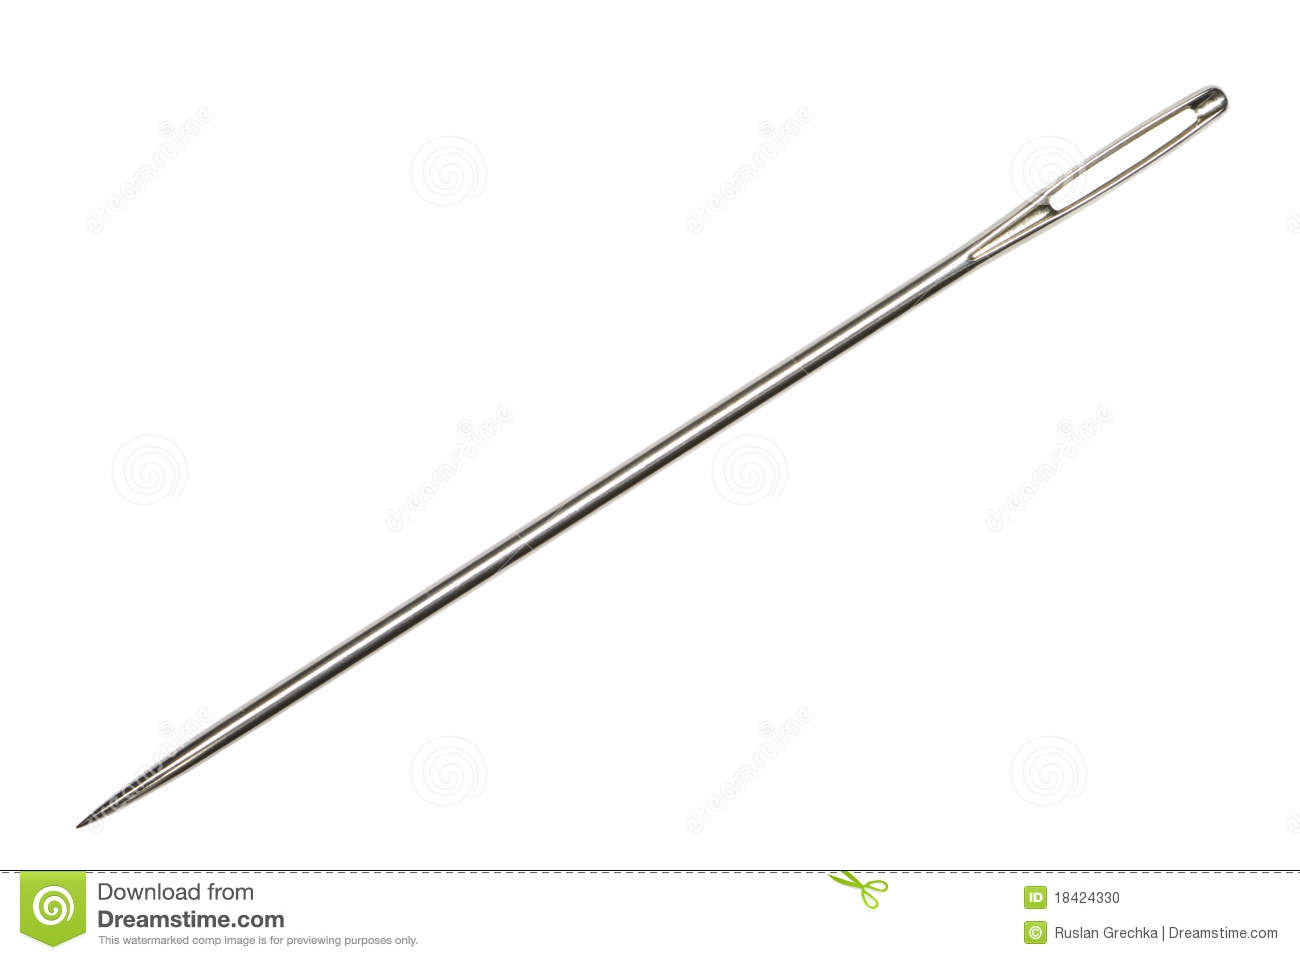 Needle (the tool for sewing) on an isolated white background.